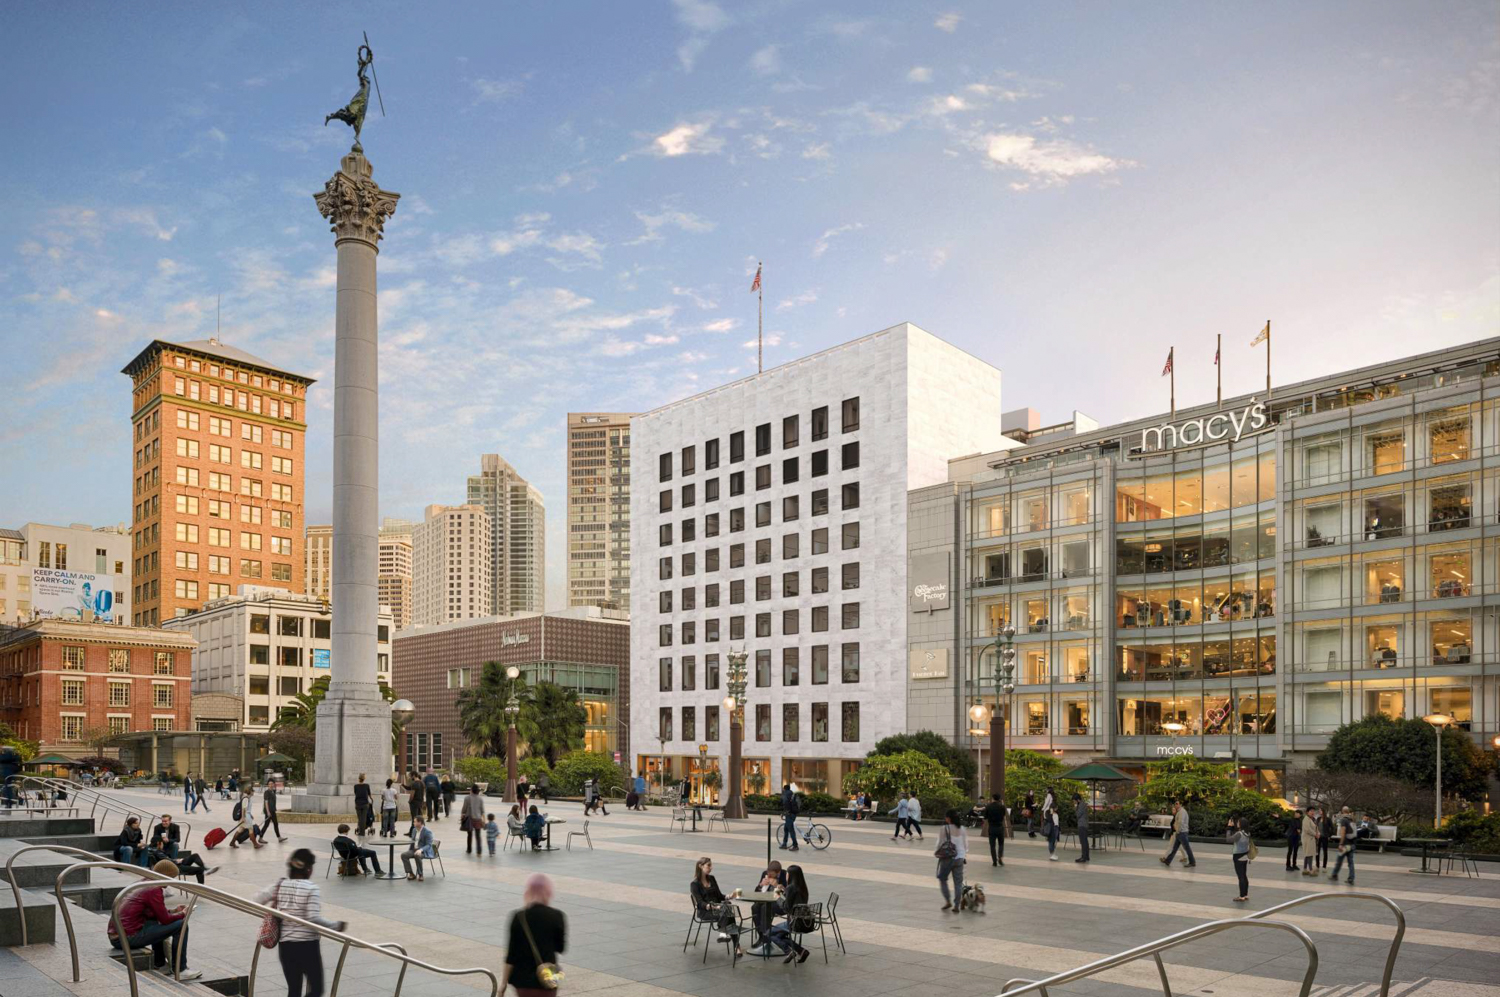 233 Geary Street from across Union Square, rendering by Handel Architects